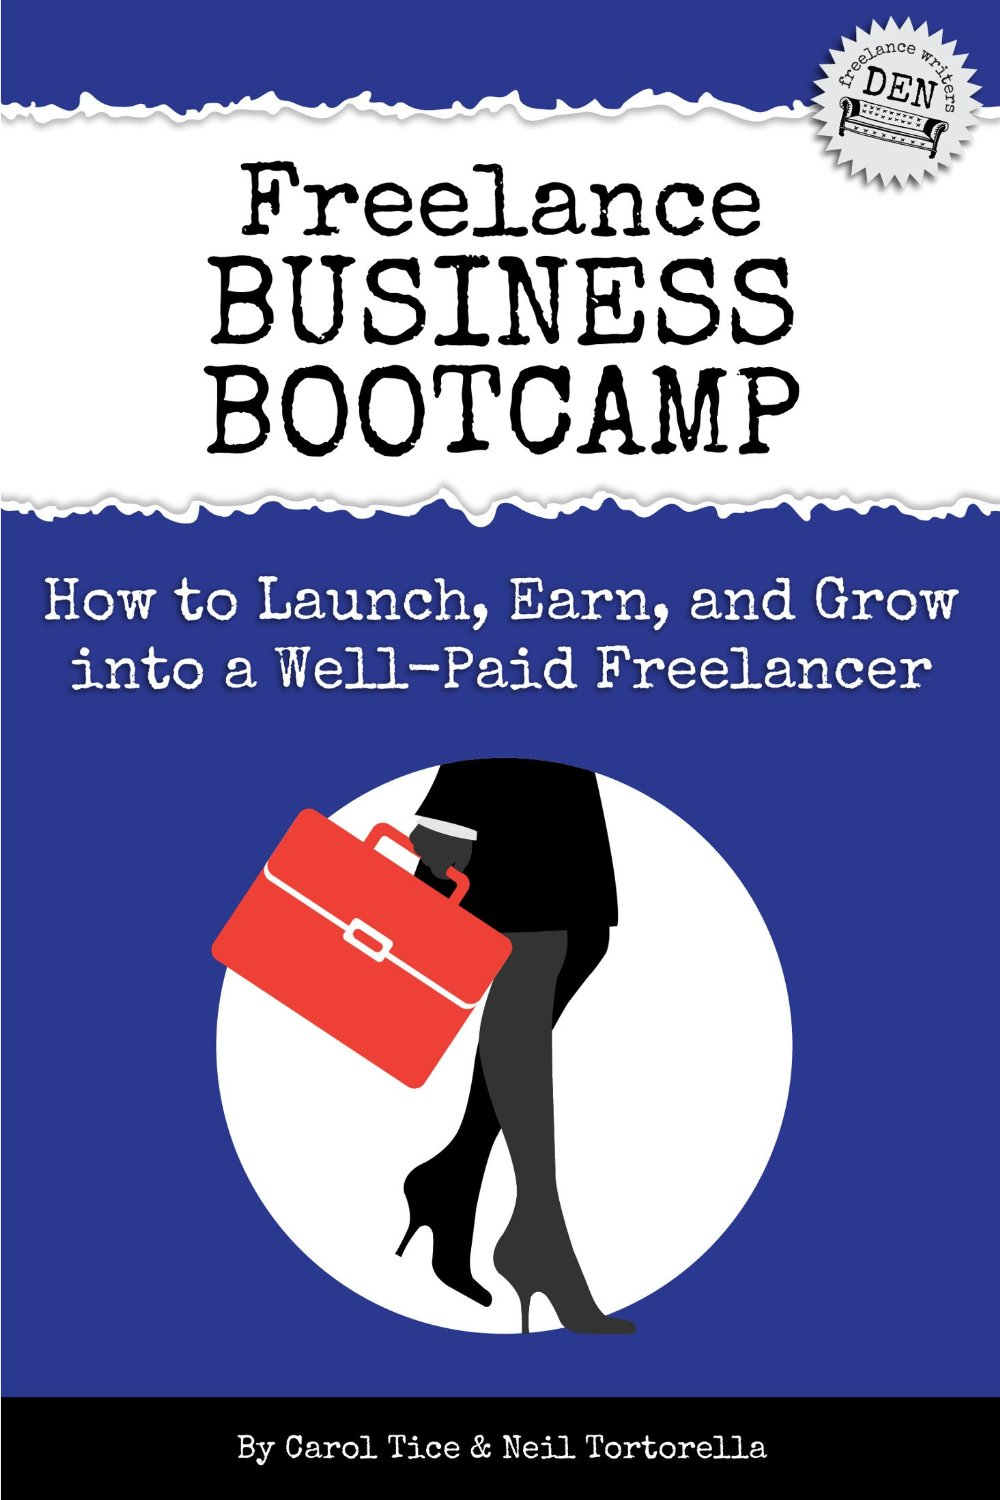 Book Review by Wendy Strain: Freelance Business Bootcamp by Carol Tice and Neil Tortorella